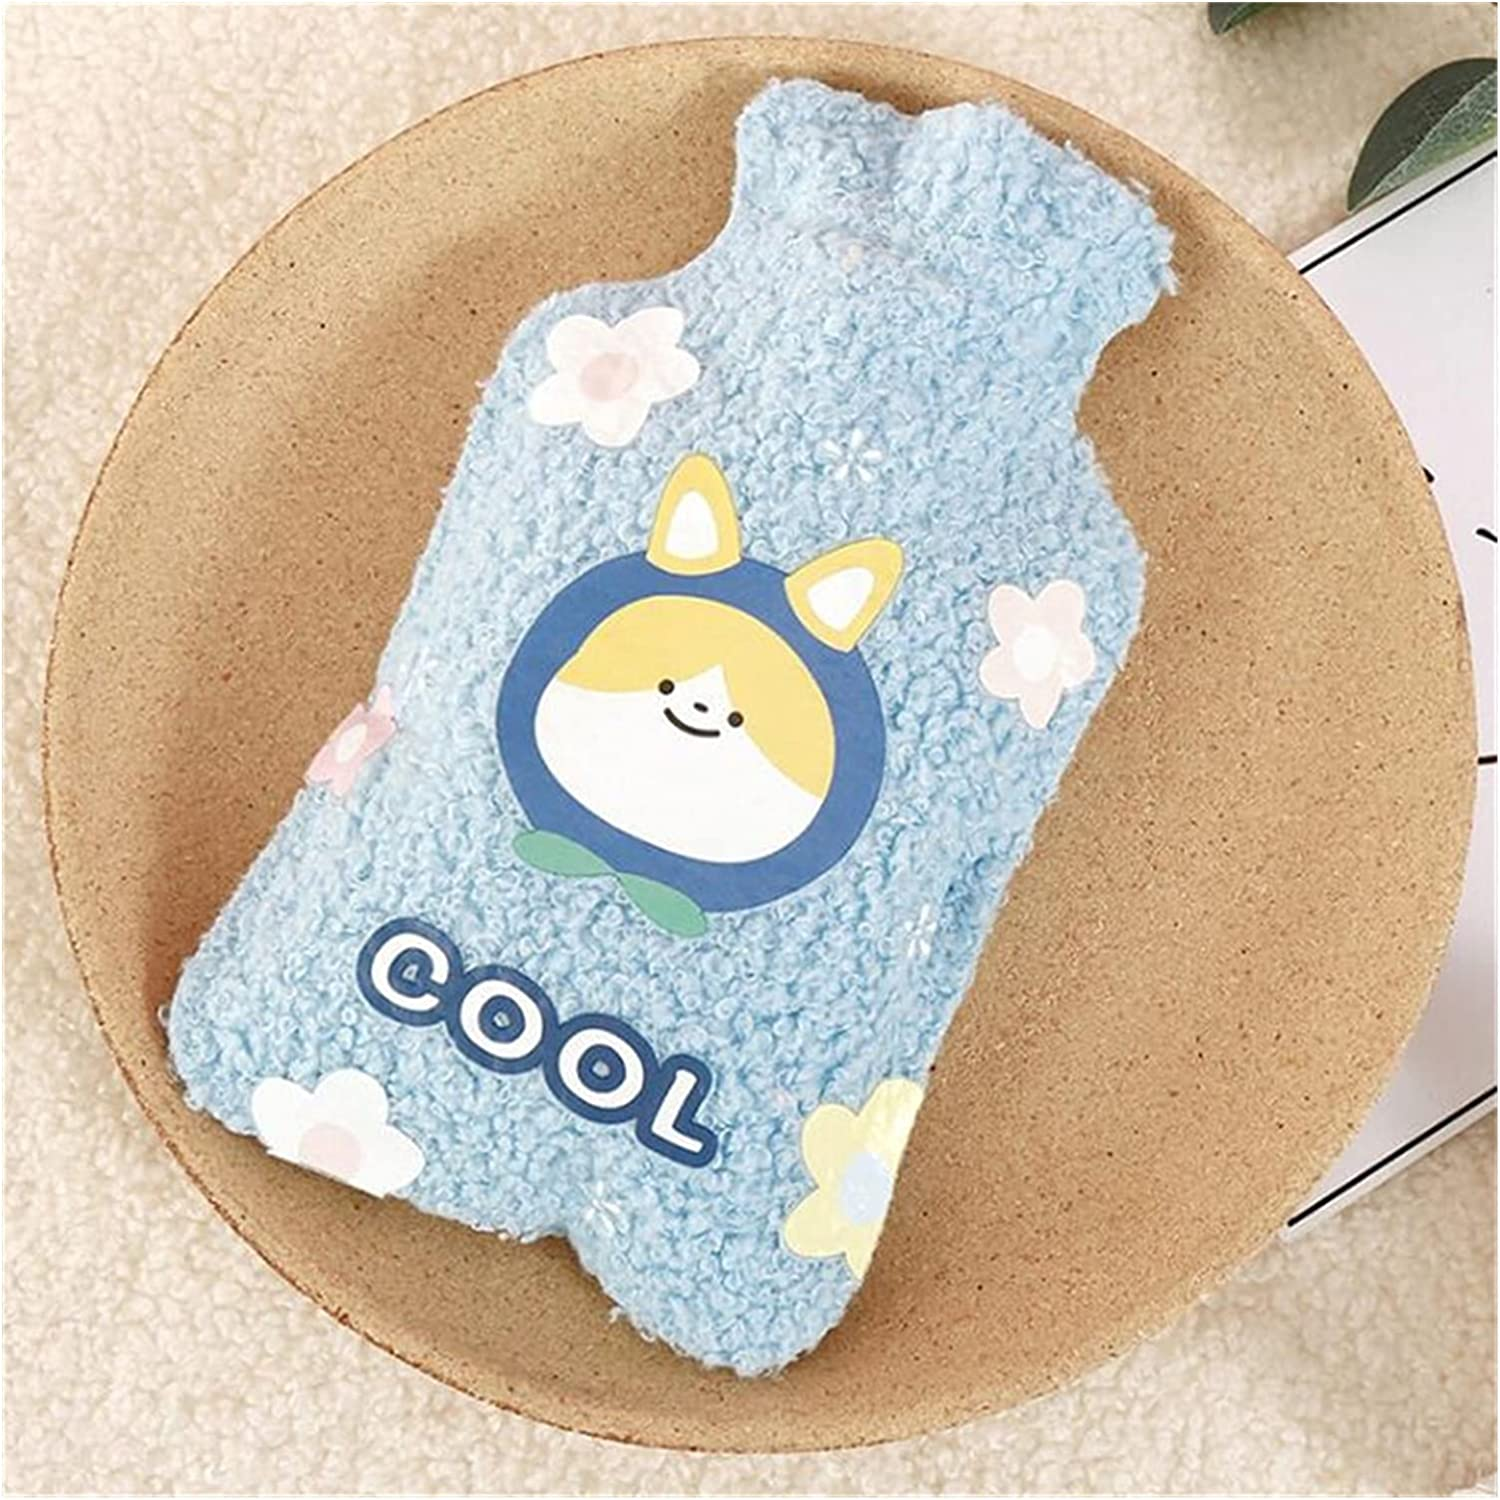 YIXINGSHANGMAO New popularity 1PCs Keep Warm Cute Therap New sales PVC Relief Stress Pain